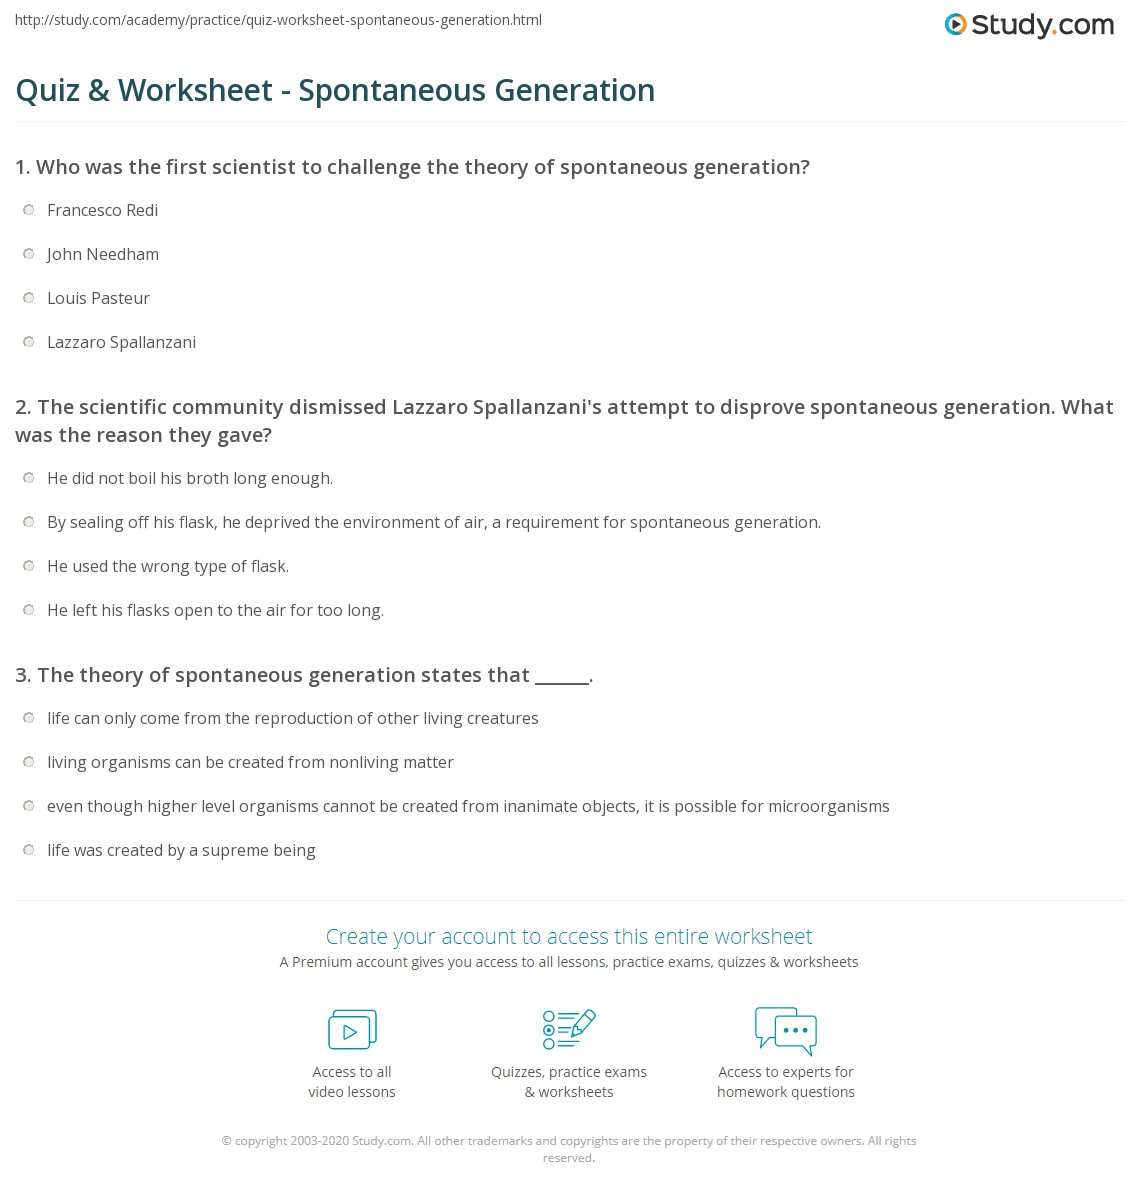 Aldiablosus  Winning Quiz Amp Worksheet  Spontaneous Generation  Studycom With Interesting Print Spontaneous Generation Definition Theory Amp Examples Worksheet With Beauteous Linking And Helping Verb Worksheets Also Student Time Management Worksheet In Addition Worksheet In Computer And Preschool Literacy Worksheets As Well As Spelling Grade  Worksheets Additionally Addition Games Worksheets From Studycom With Aldiablosus  Interesting Quiz Amp Worksheet  Spontaneous Generation  Studycom With Beauteous Print Spontaneous Generation Definition Theory Amp Examples Worksheet And Winning Linking And Helping Verb Worksheets Also Student Time Management Worksheet In Addition Worksheet In Computer From Studycom